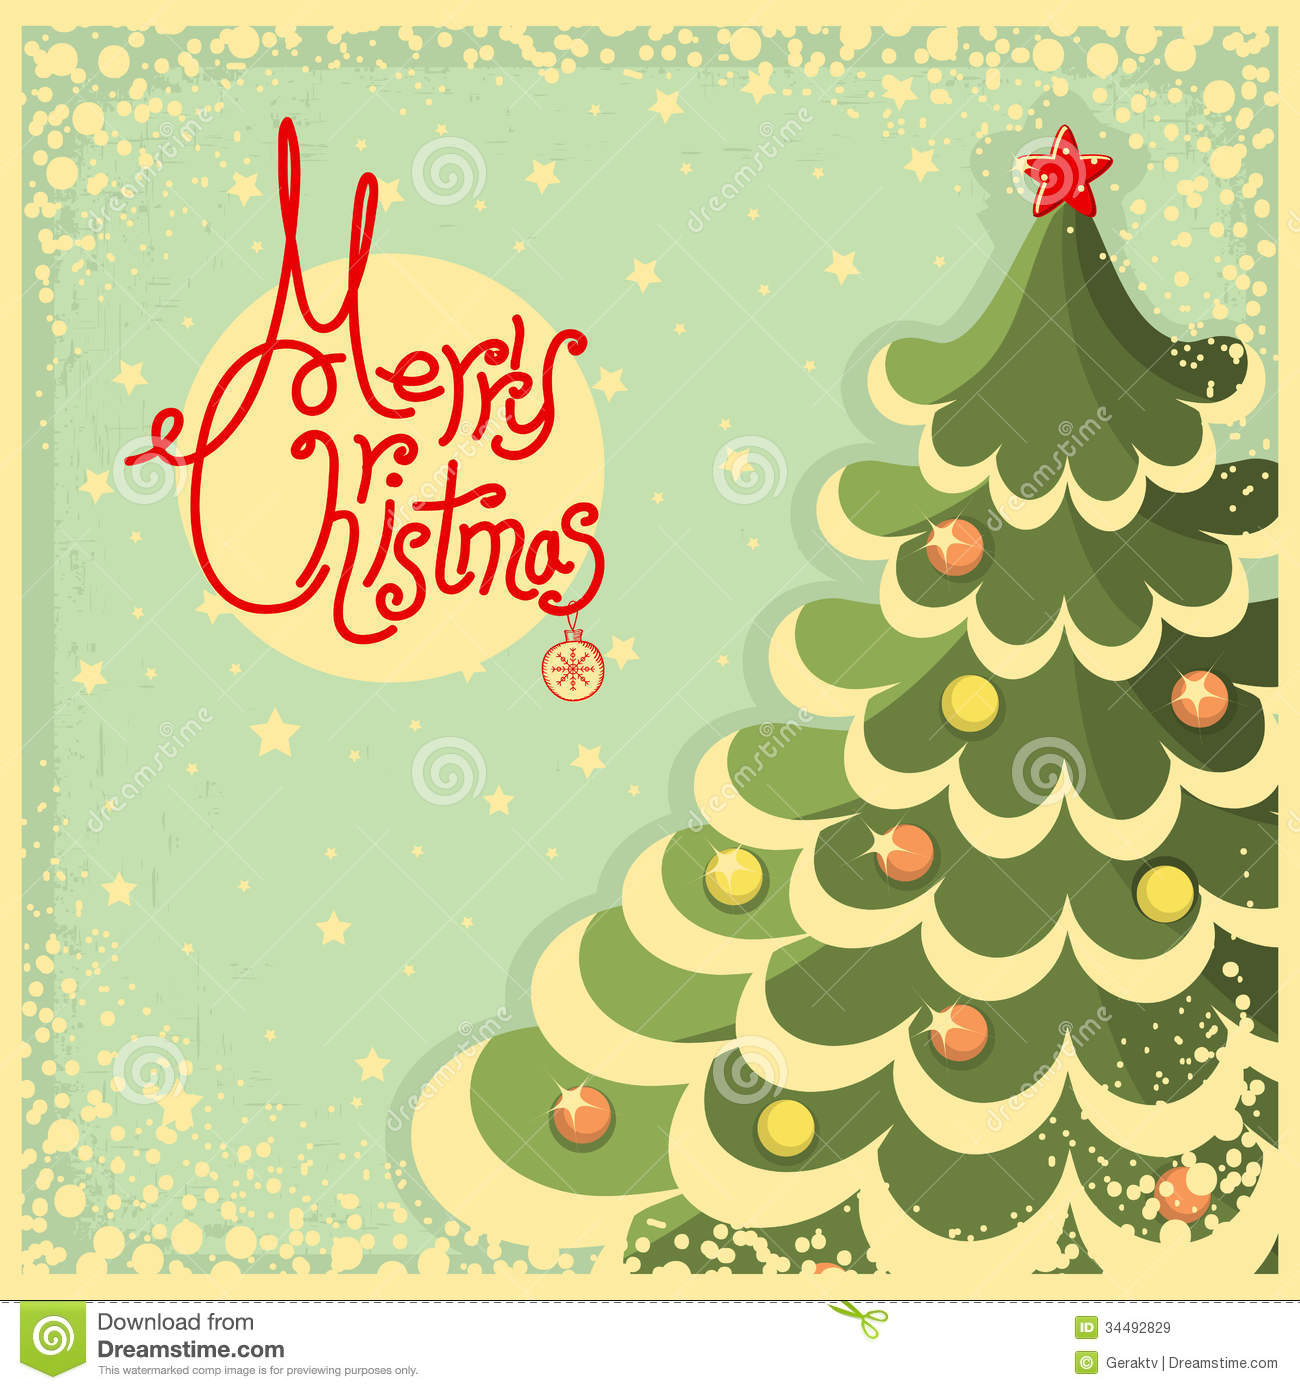 Old Fashioned Retro Christmas Facebook Banner